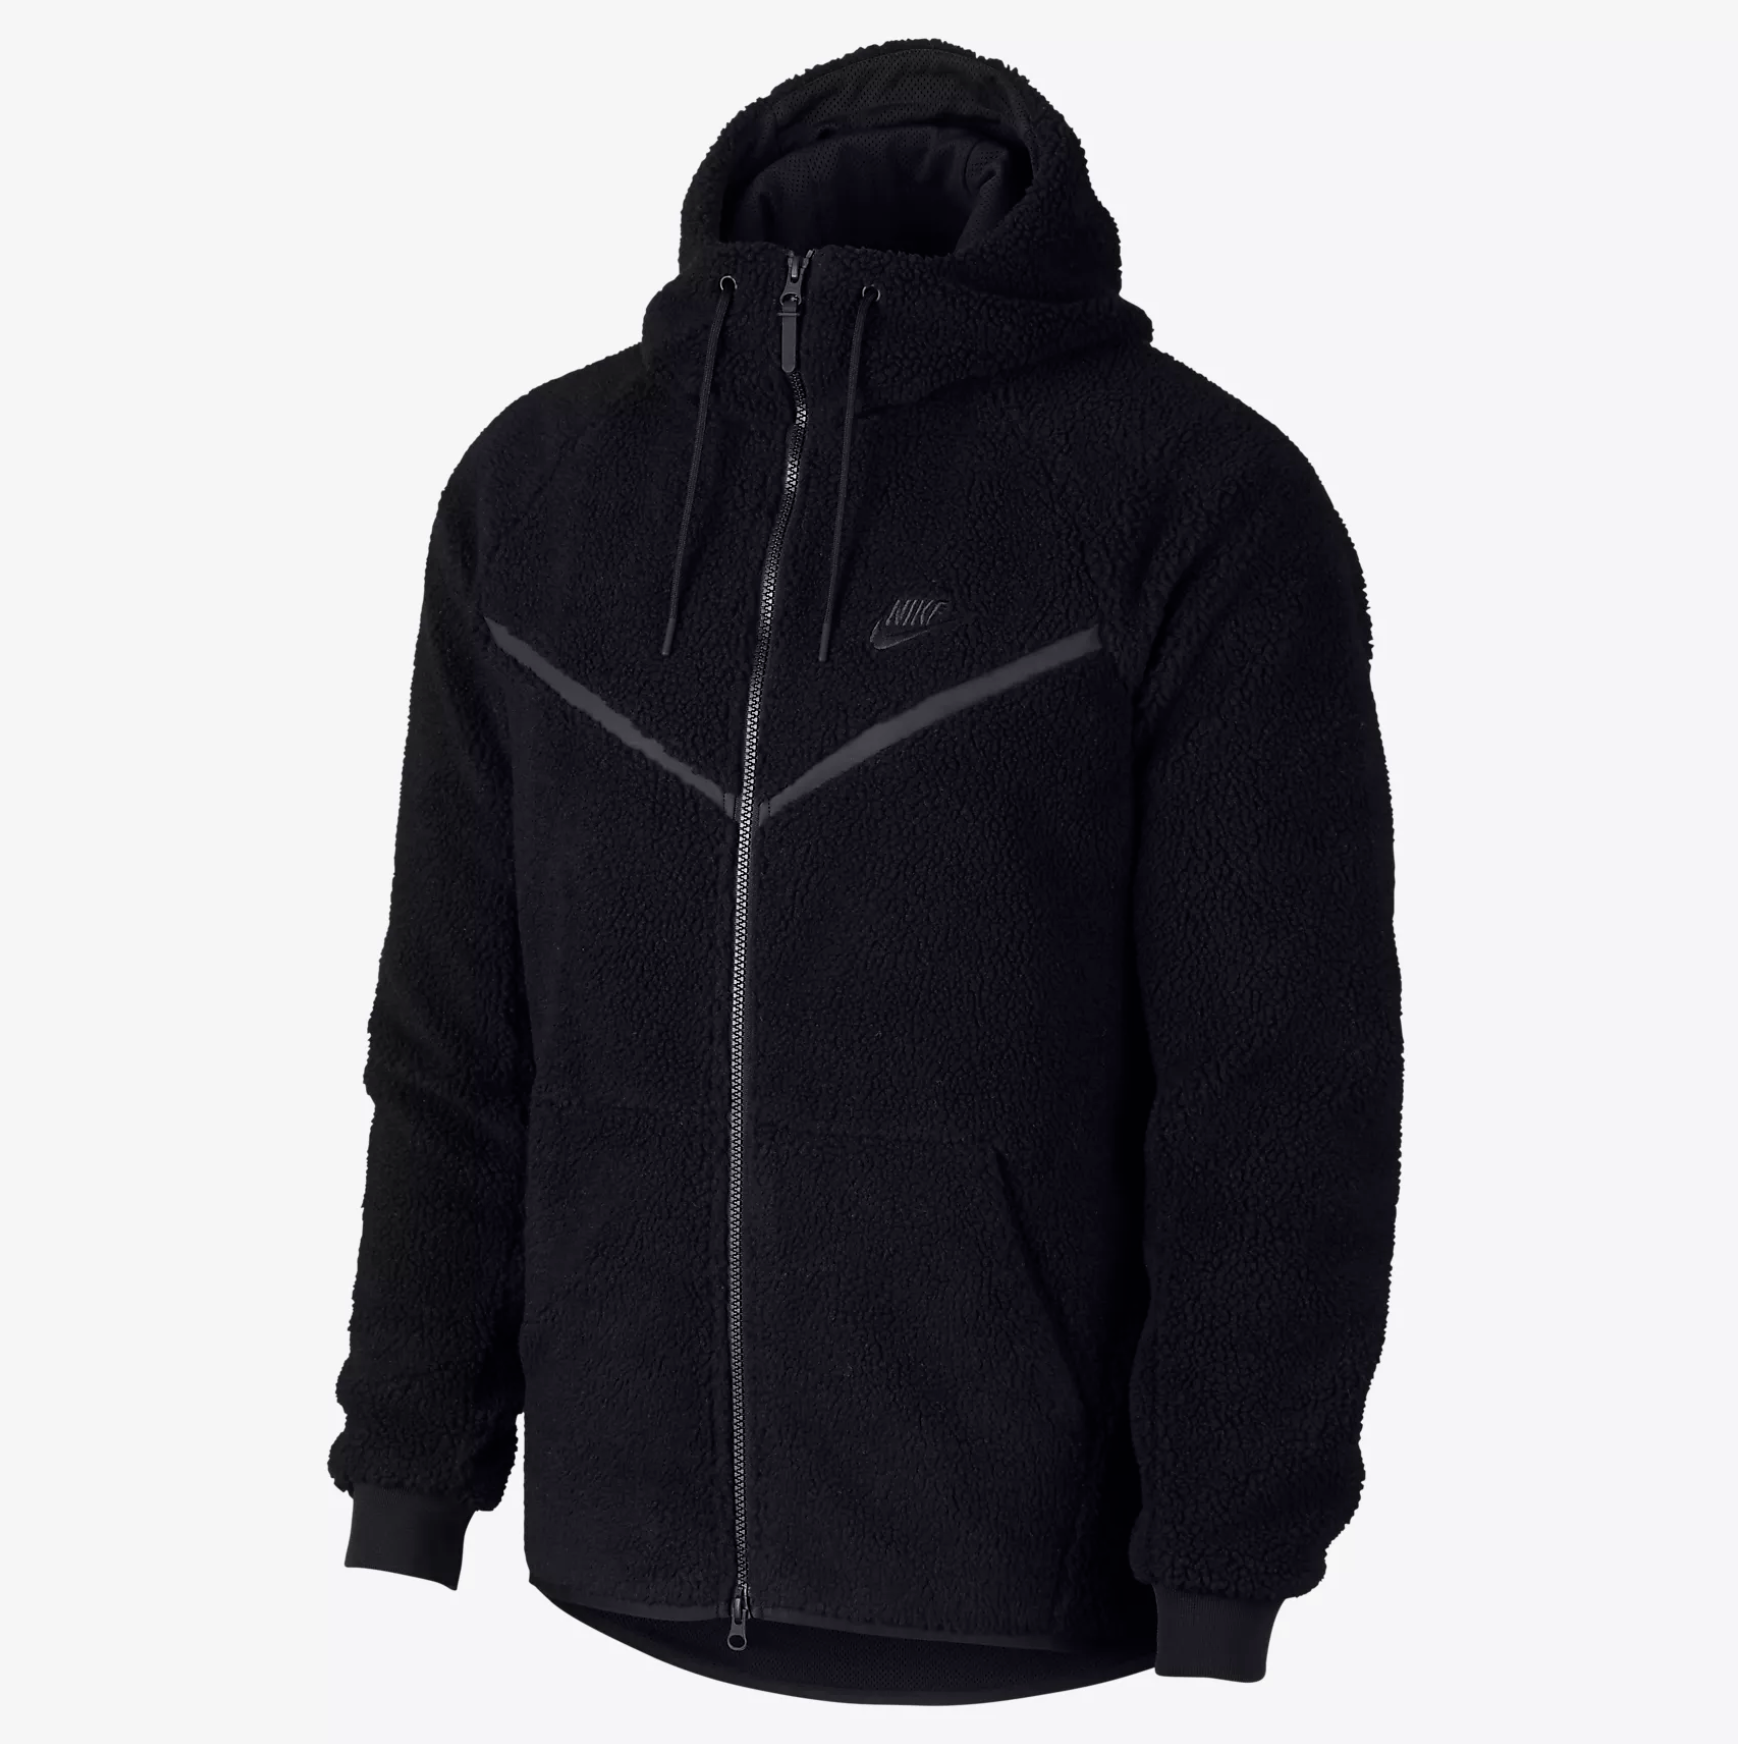 SHERPA HOODIE - This style is so comfortable and cozy. We are crushing on the Nike Sherpa Hoodie for $150.